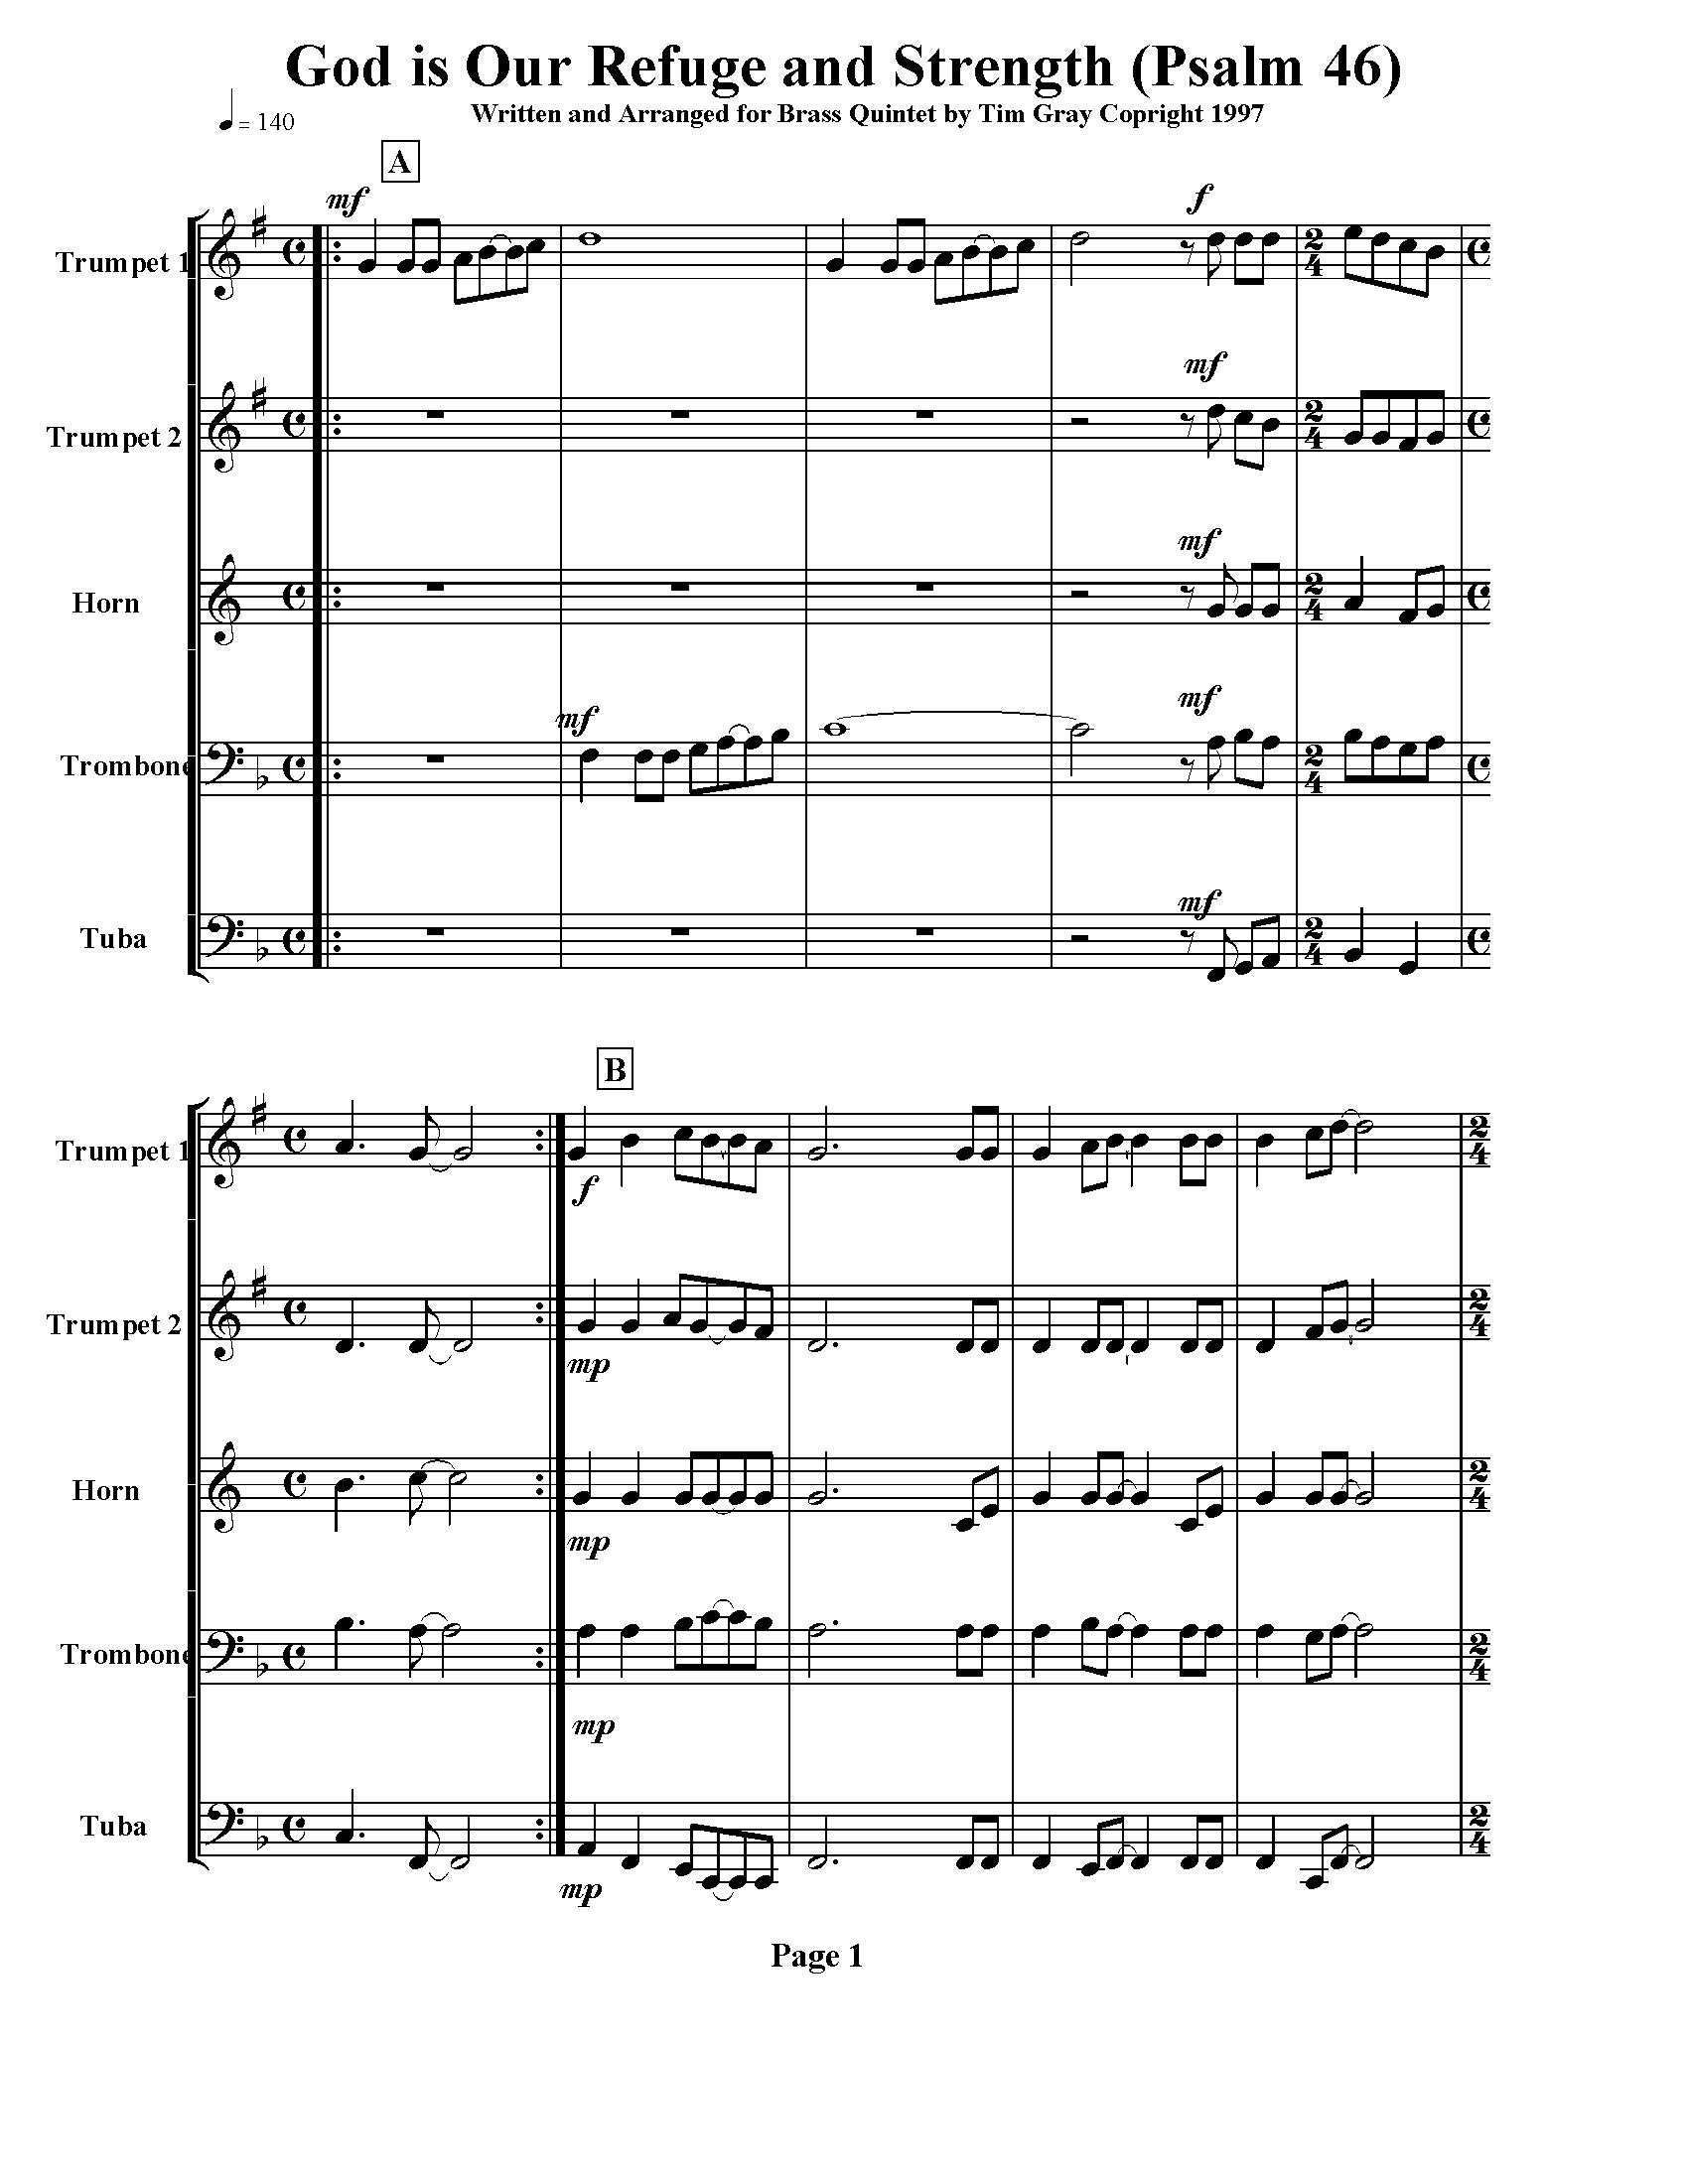 God is Our Refuge - Psalm 46 for Brass Quintet sample page at HonoringGodMusic.com